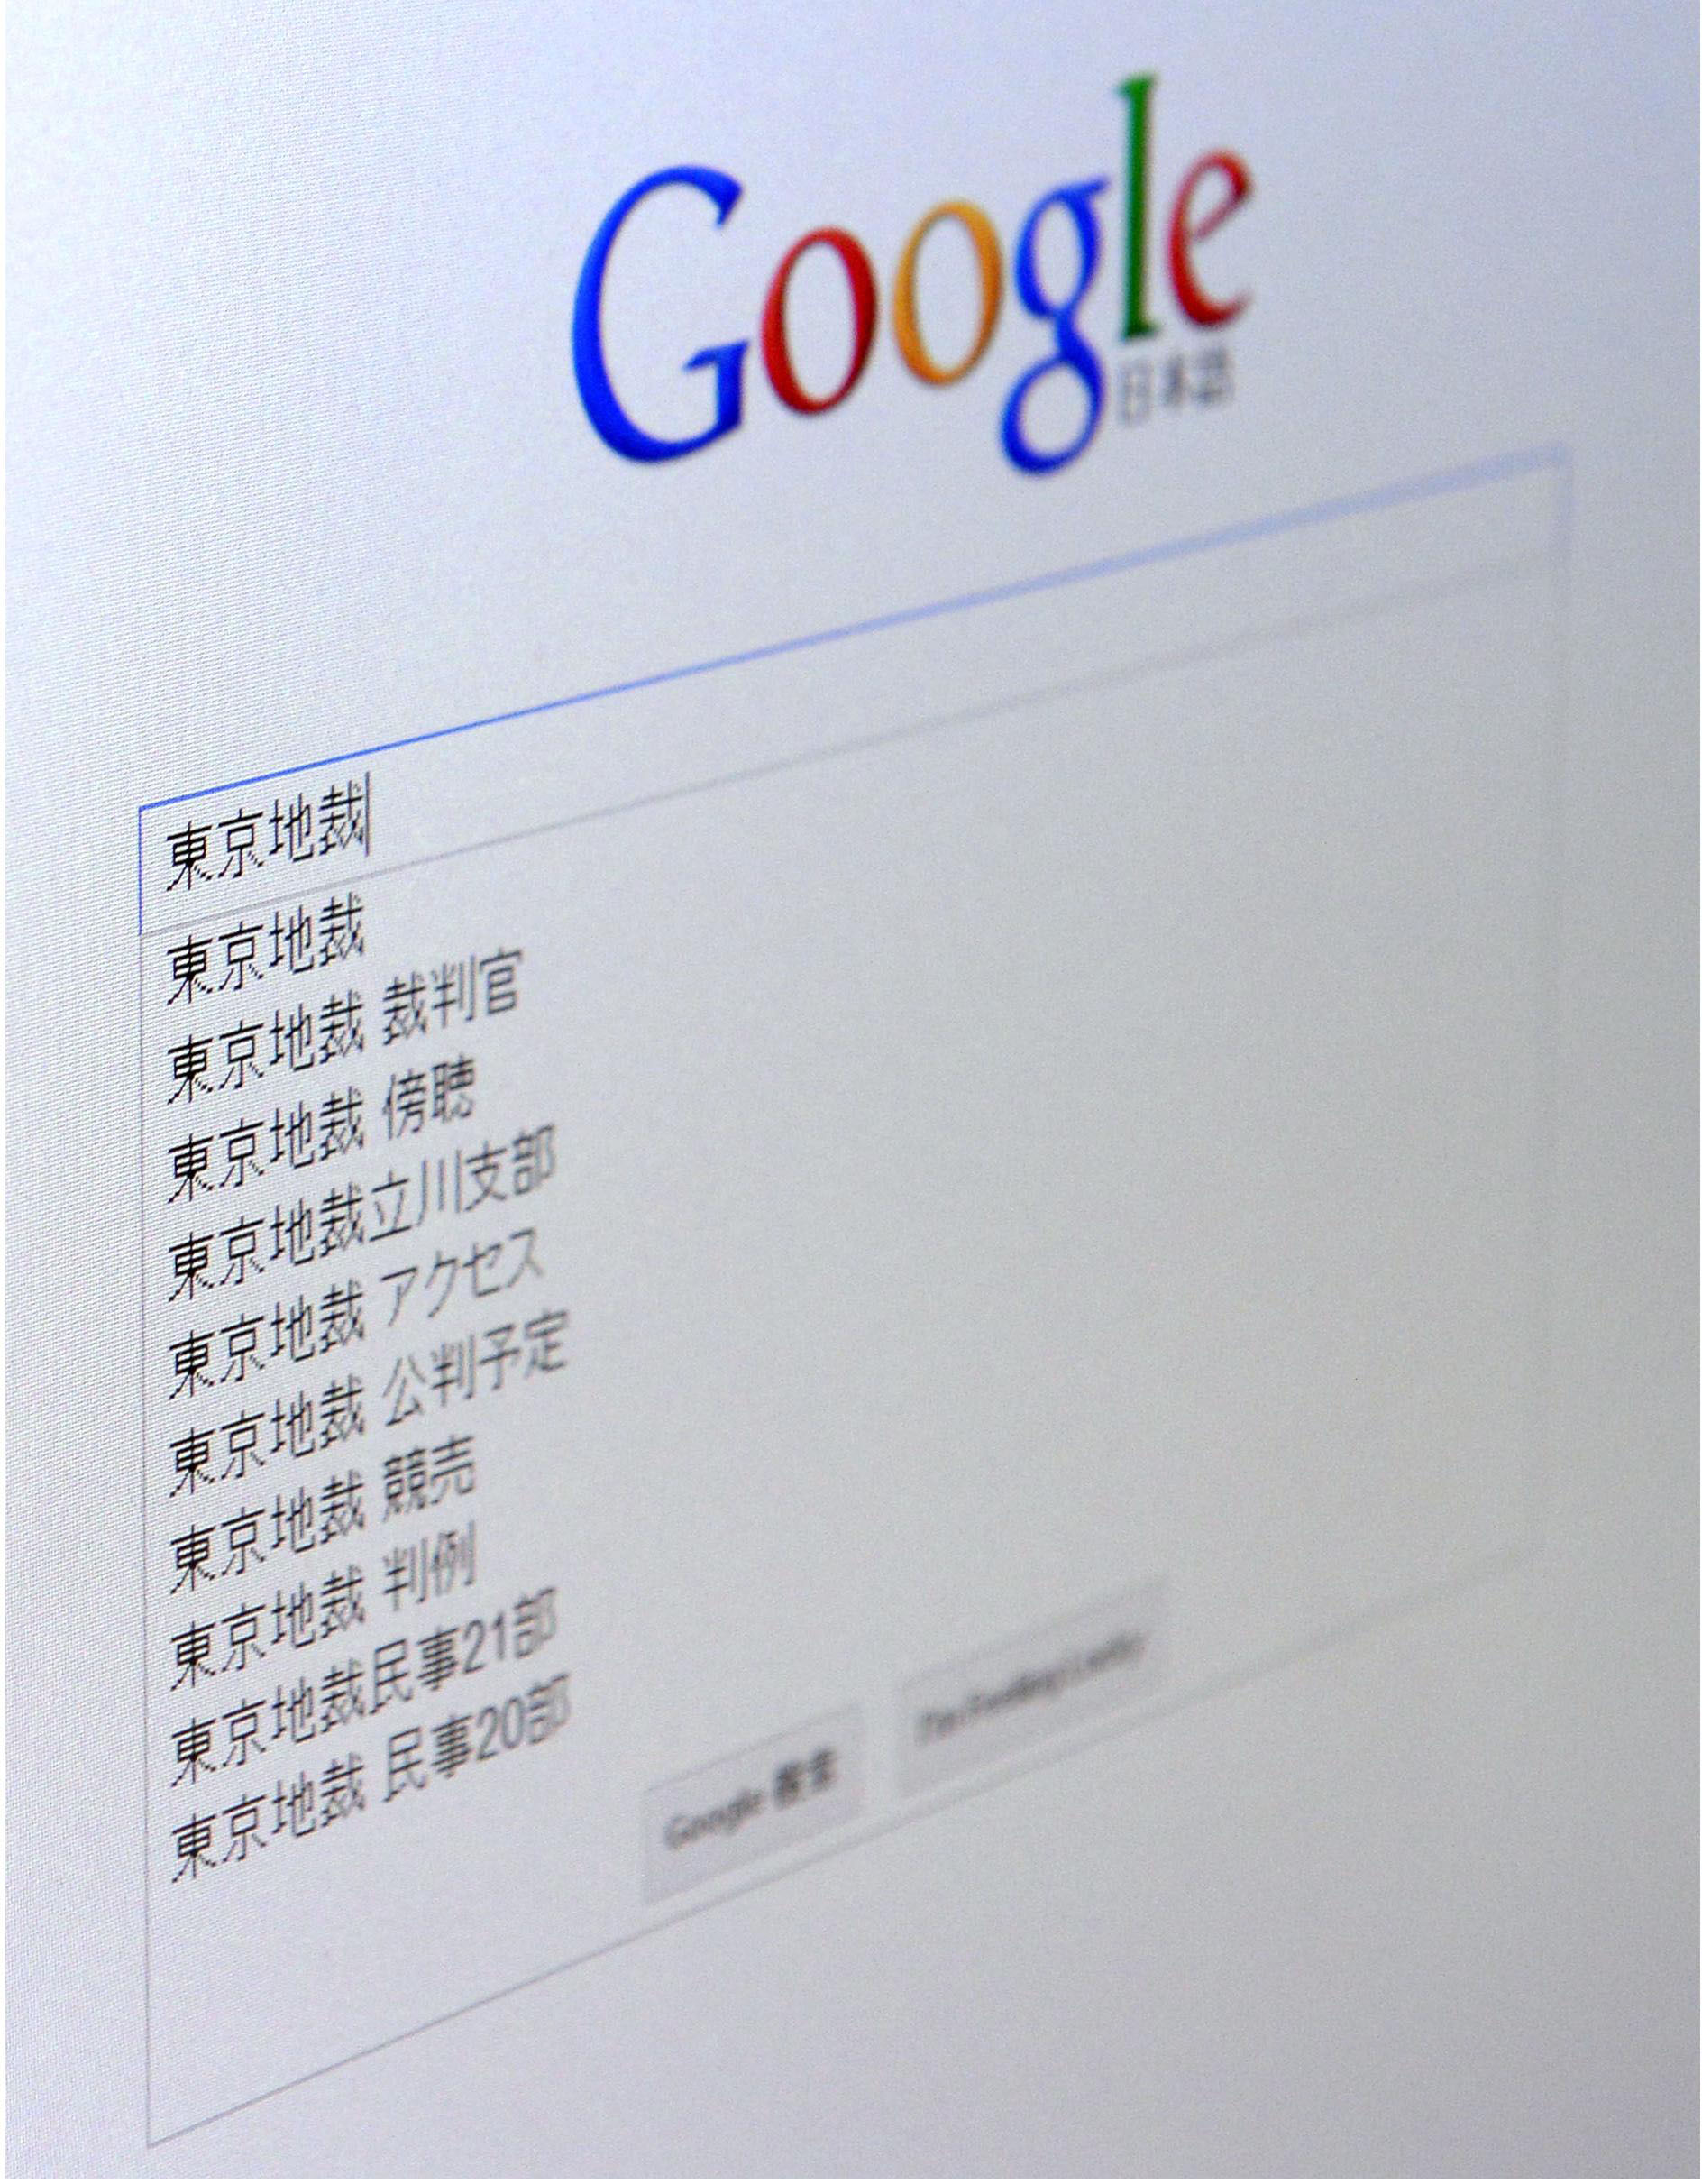 suit, Tokyo court orders Google to delete autocomplete search terms